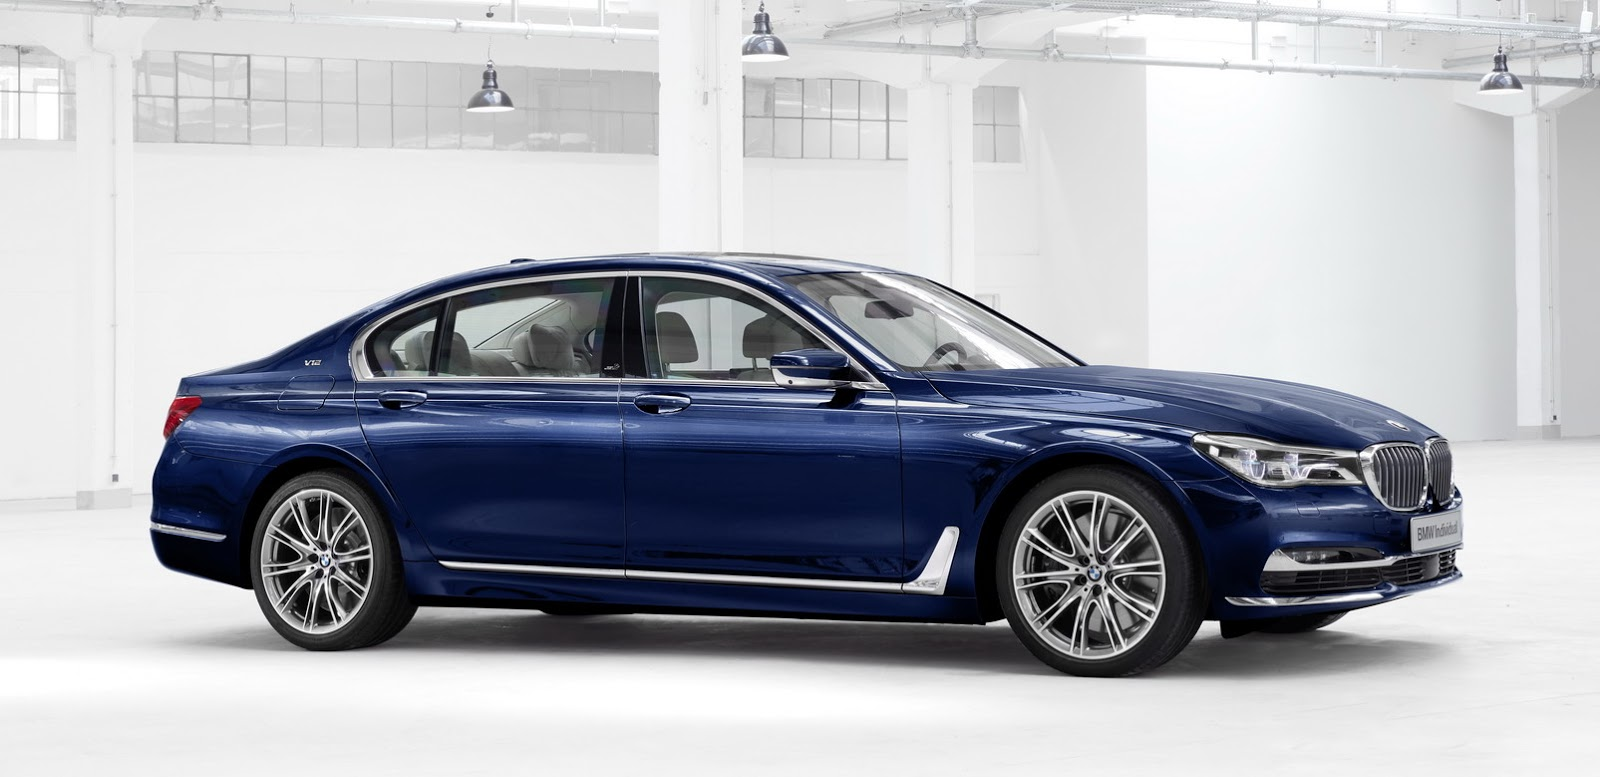 Bmw S New 7 Series Centennial Editions Have The Daftest